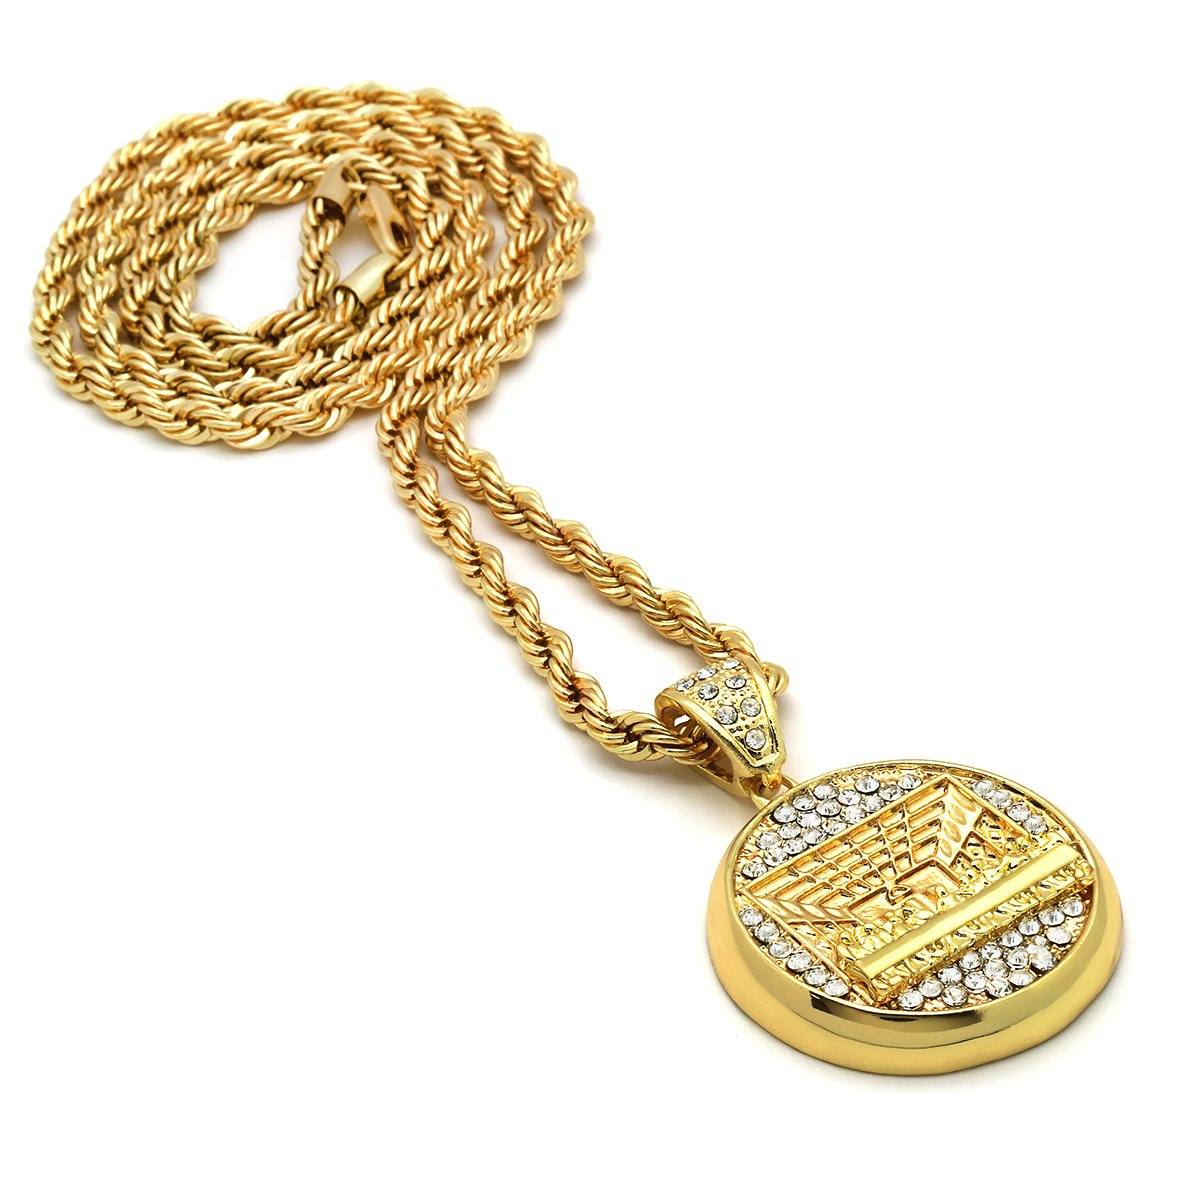 14k Gold Filled Last Supper Pendant with Rope Chain